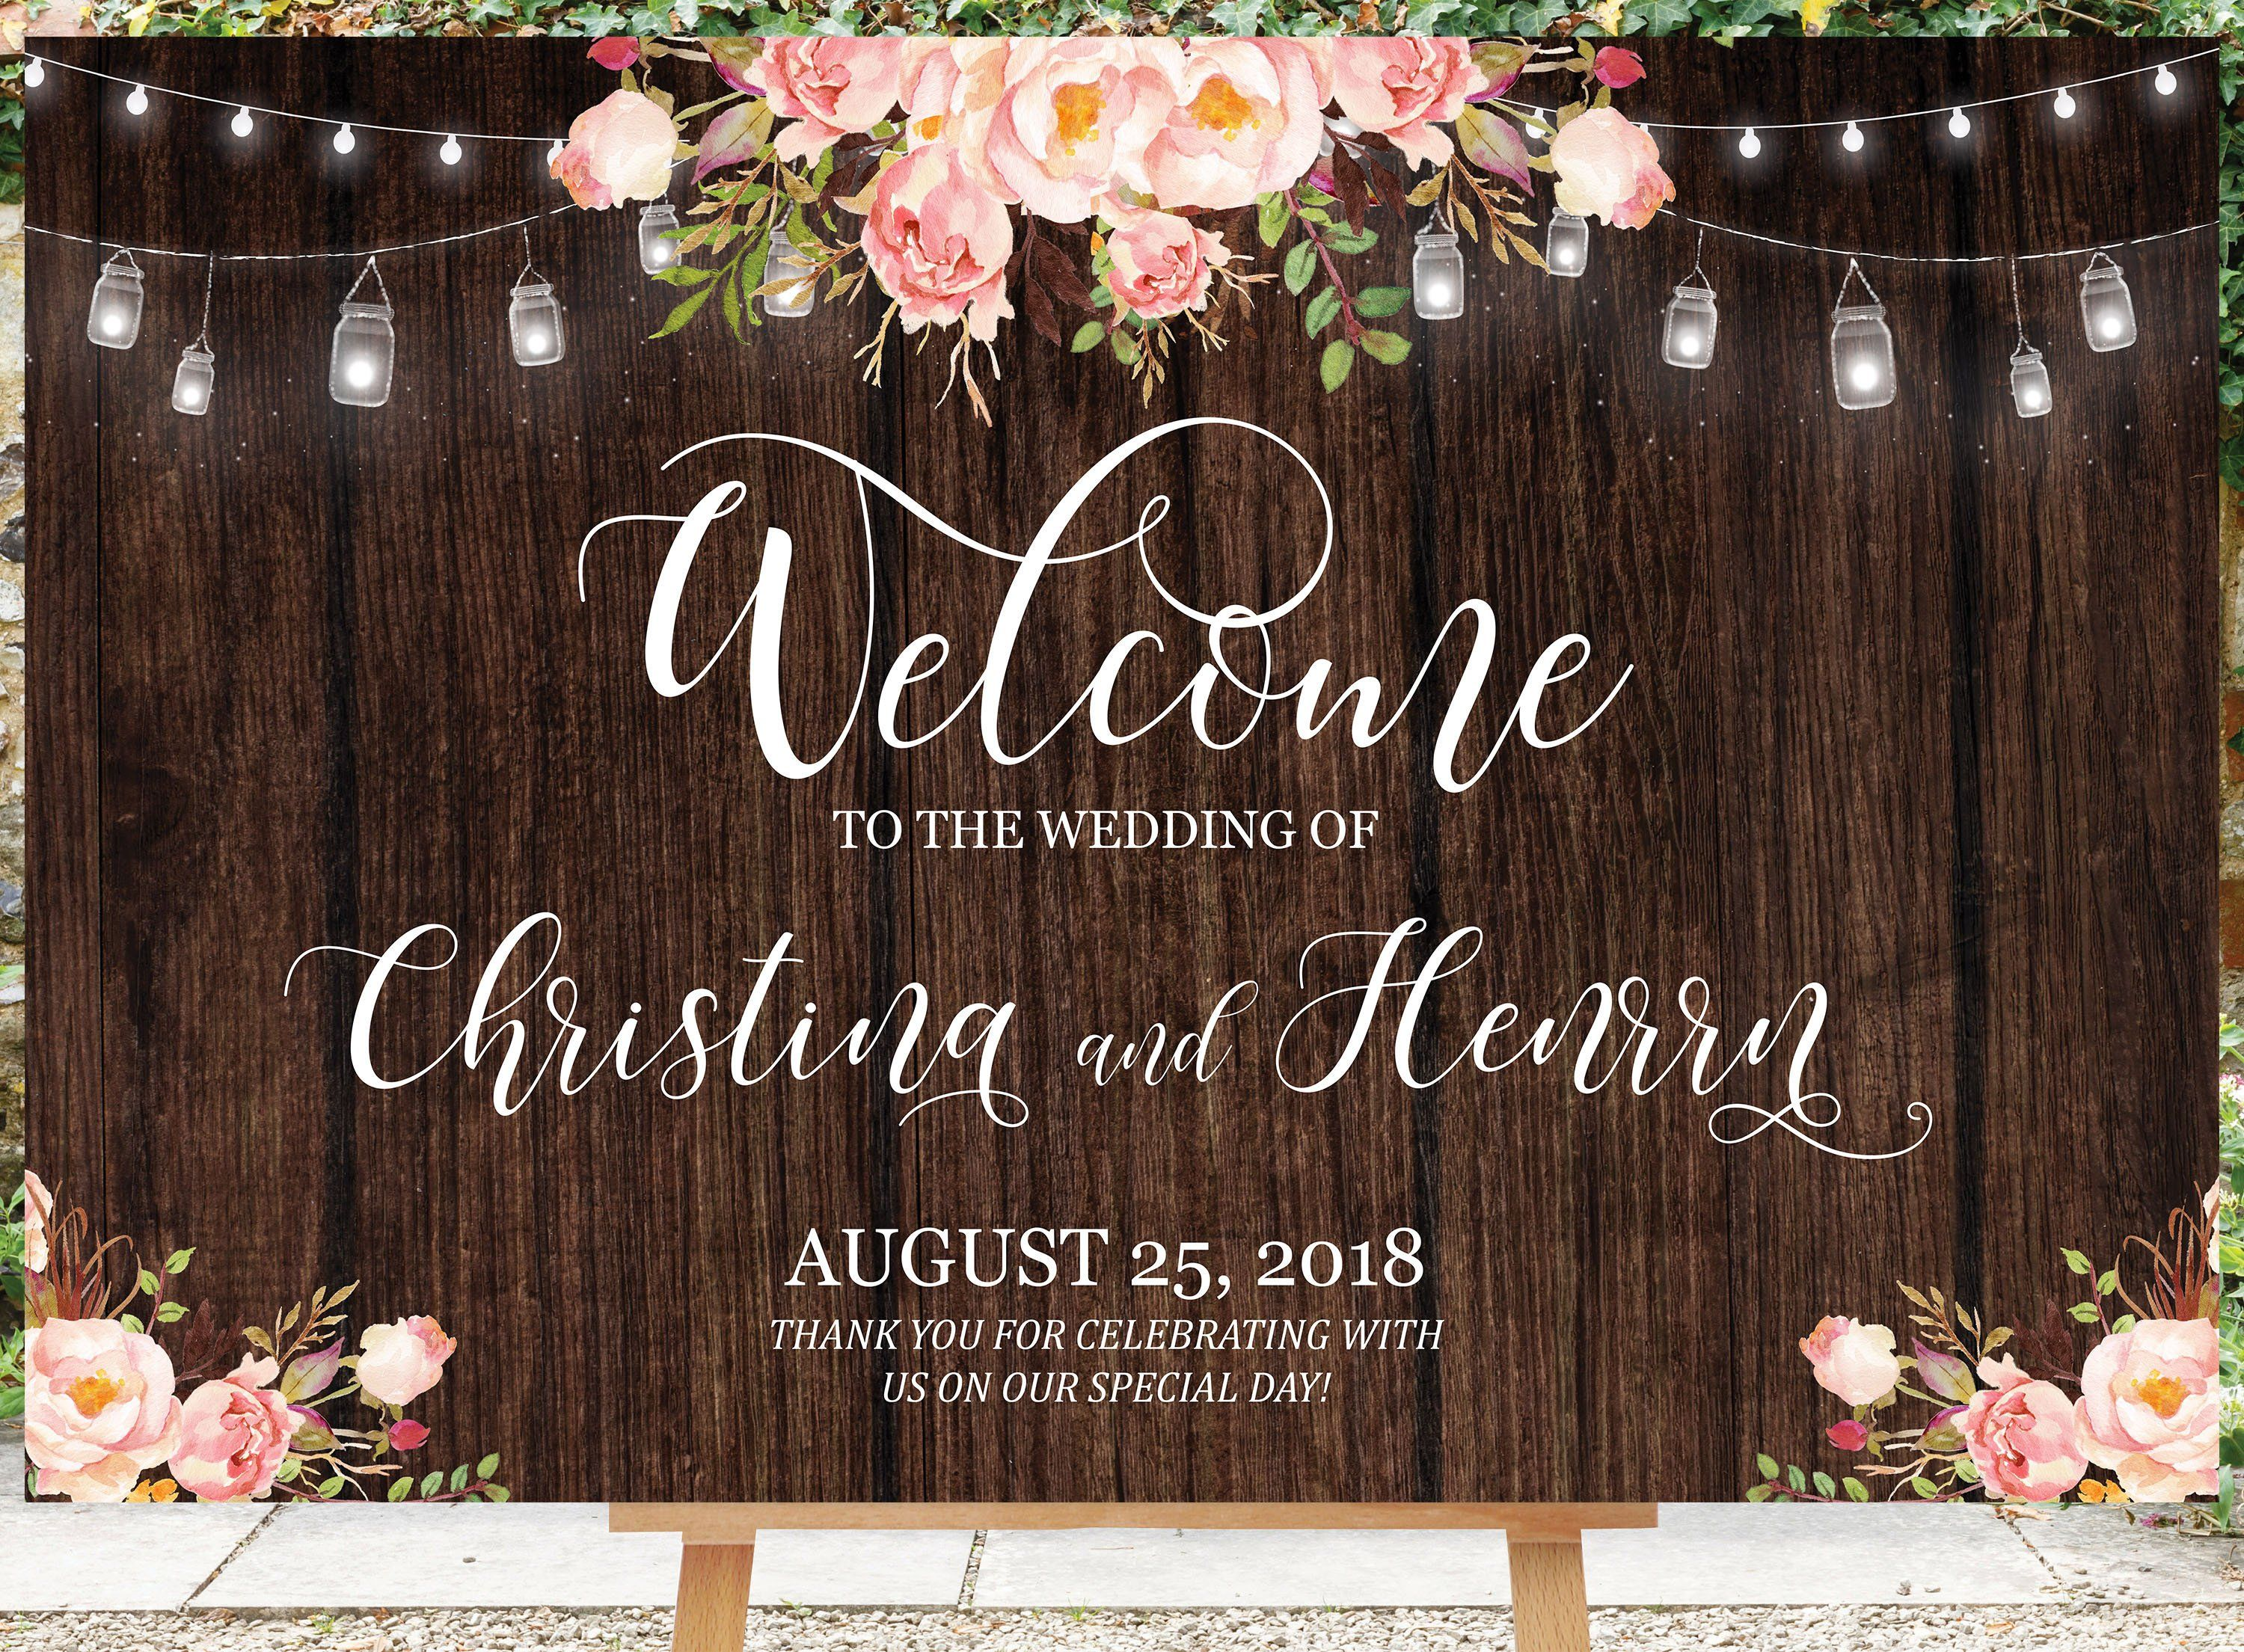 Coral Rustic Wood Effect Don/'t Post Photos Online Personalised Wedding Sign